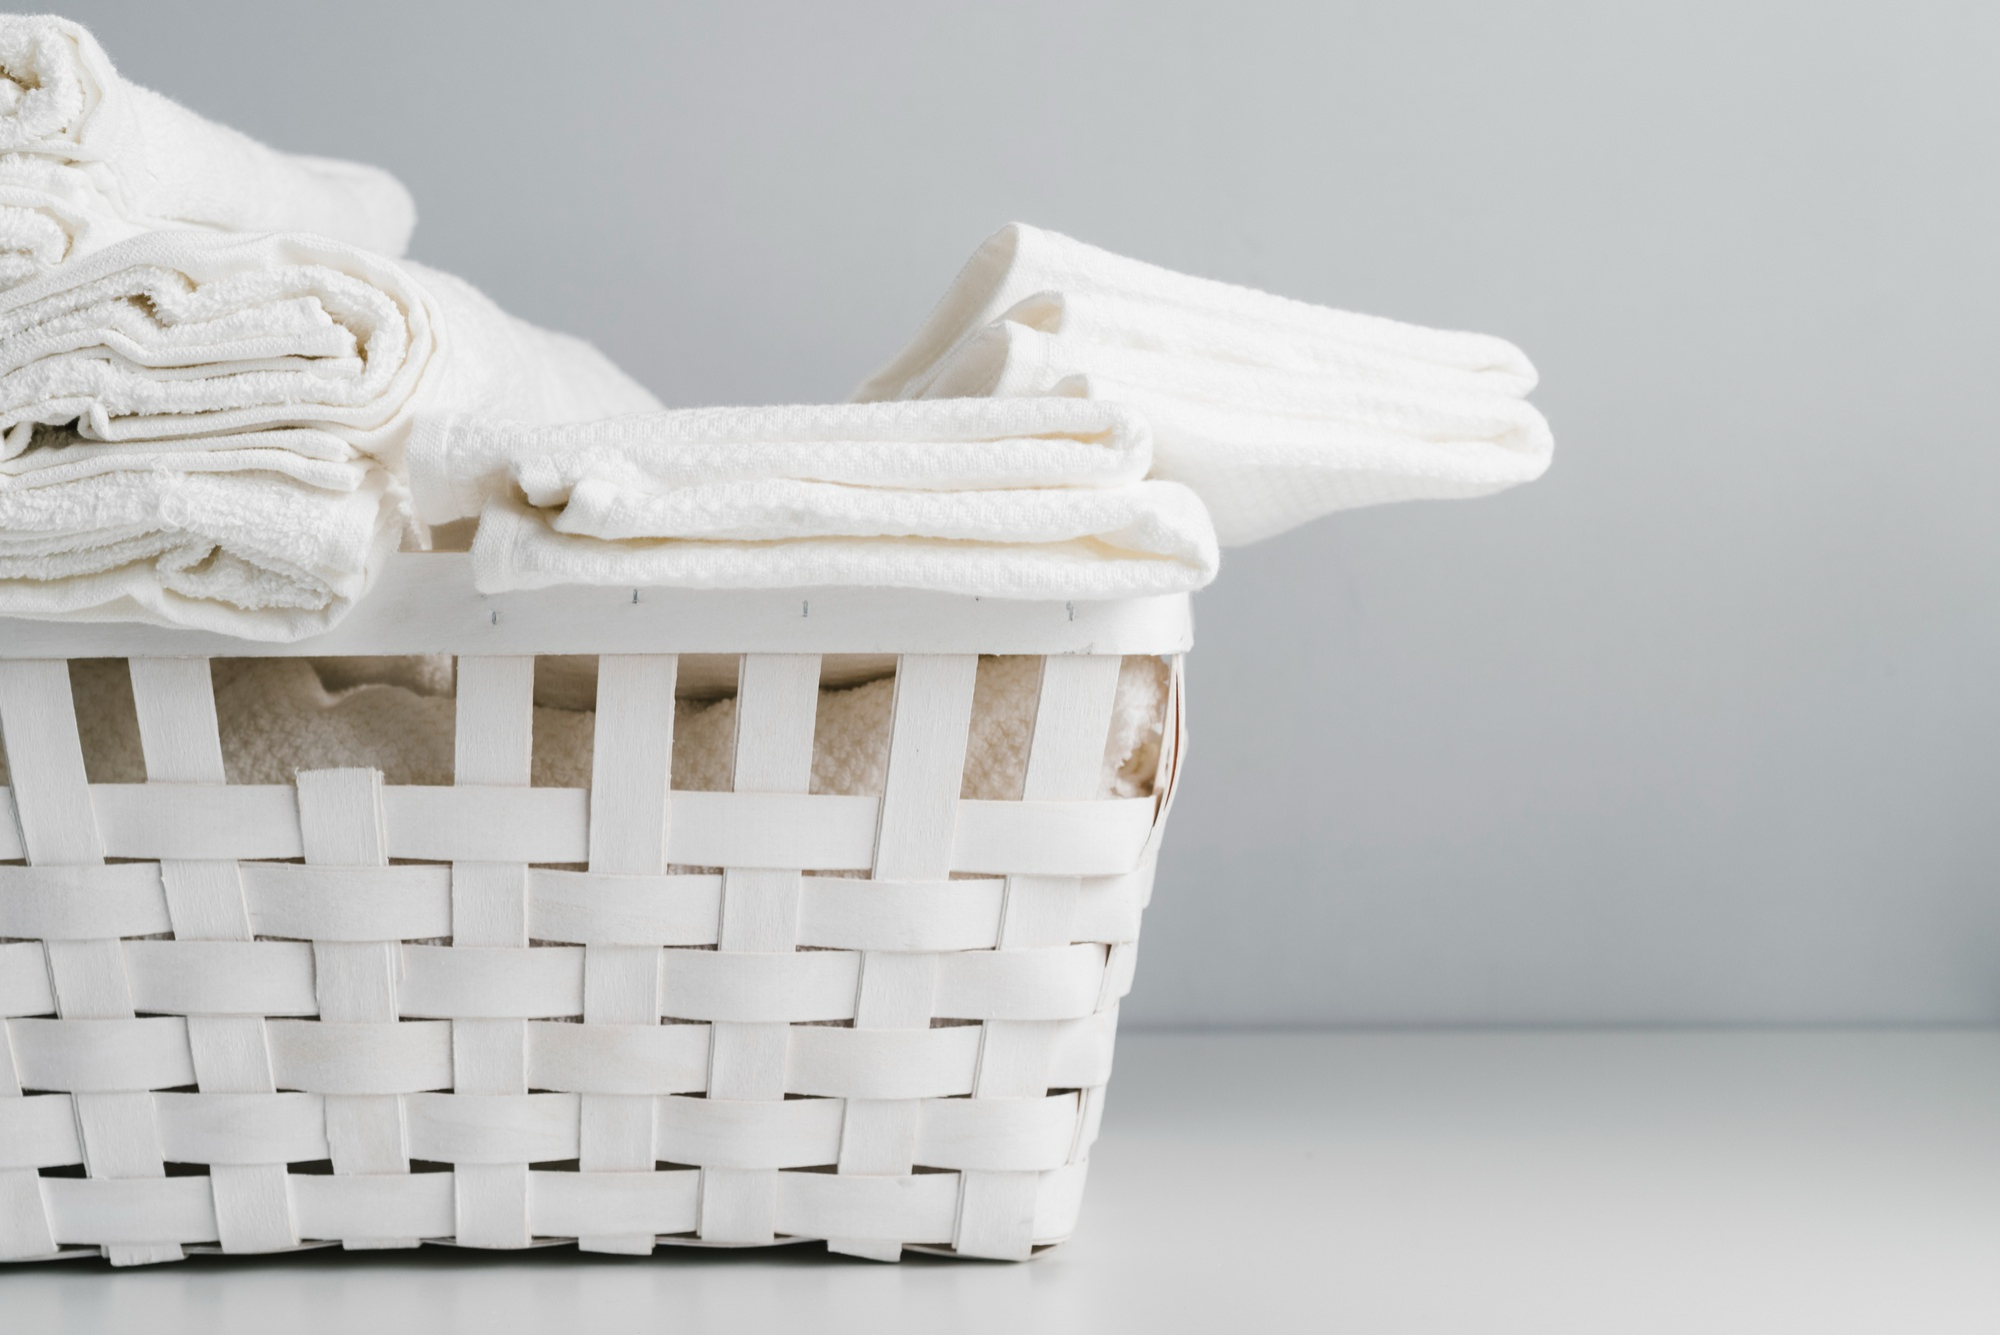 How Our Laundry Service Helps with Daily Busy Schedules | My Butler Service